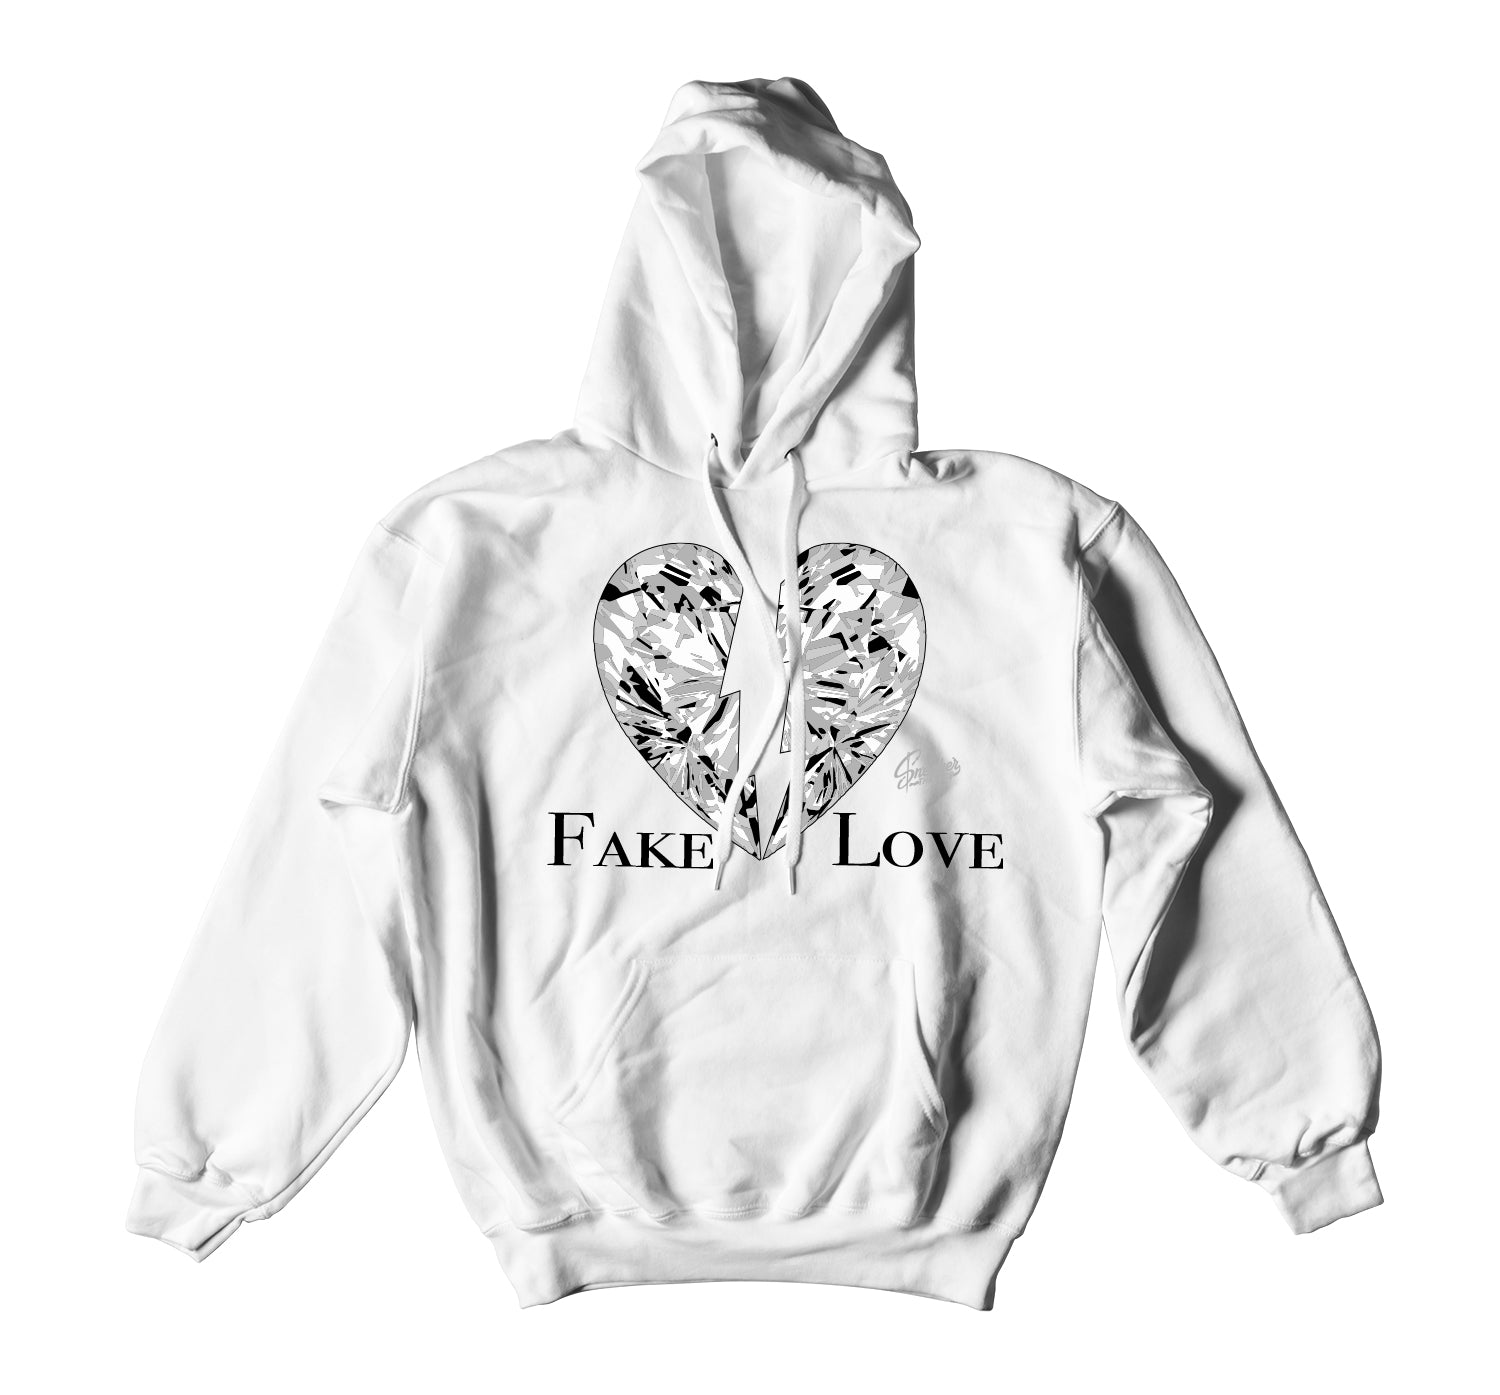 Jordan 1 Neutral Grey Fake Love Hoody